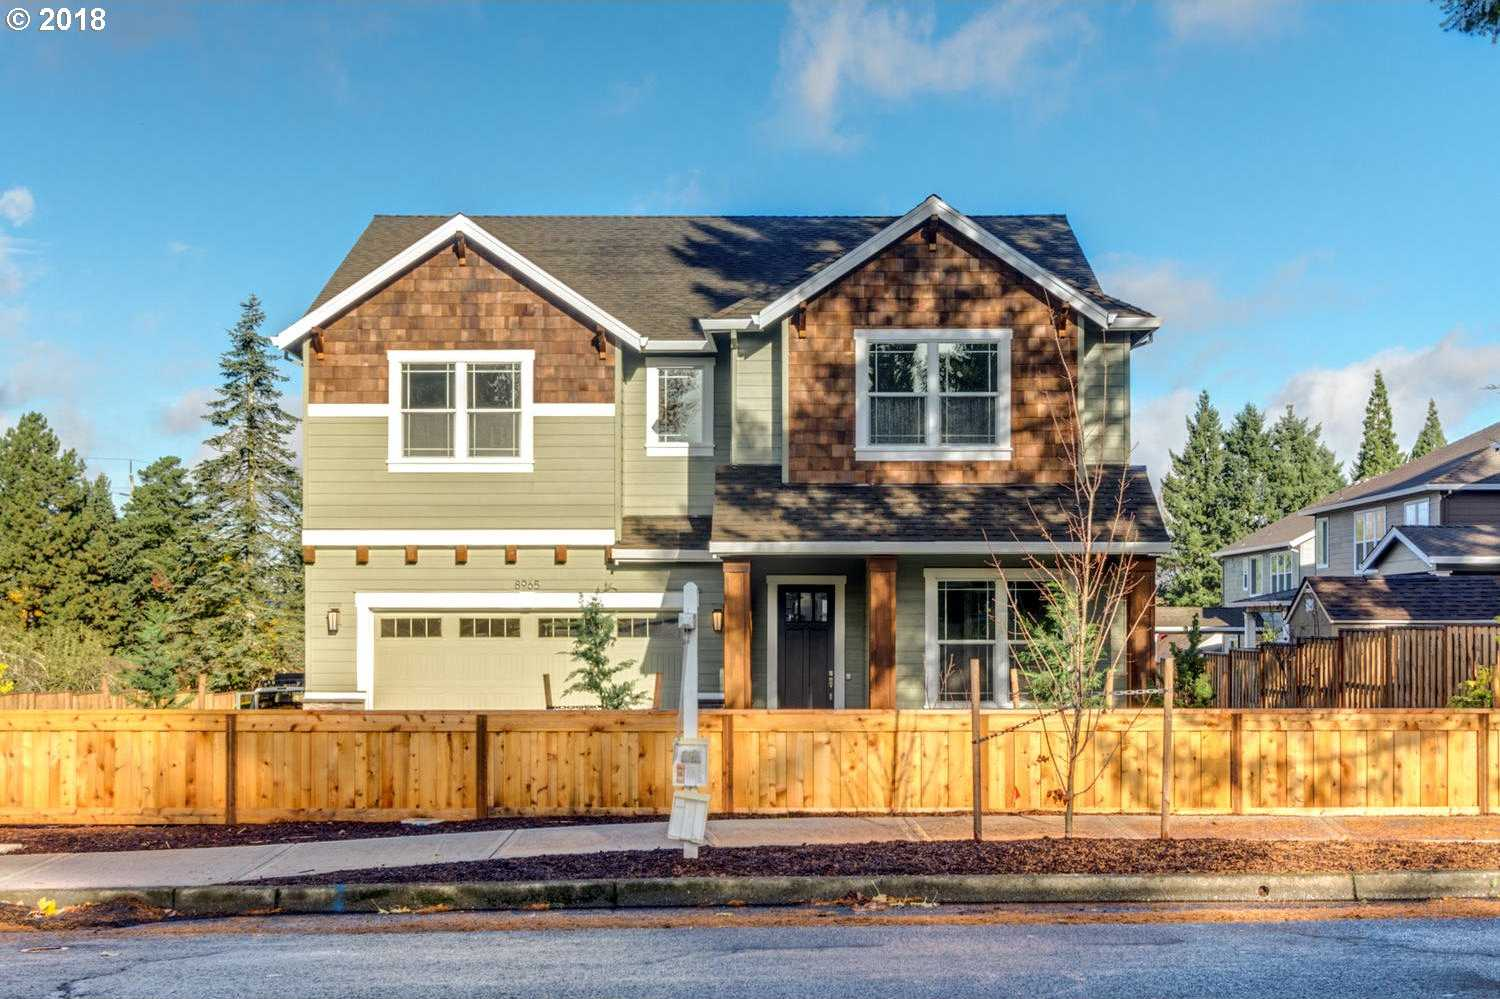 $609,950 - 4Br/3Ba -  for Sale in Tualatin